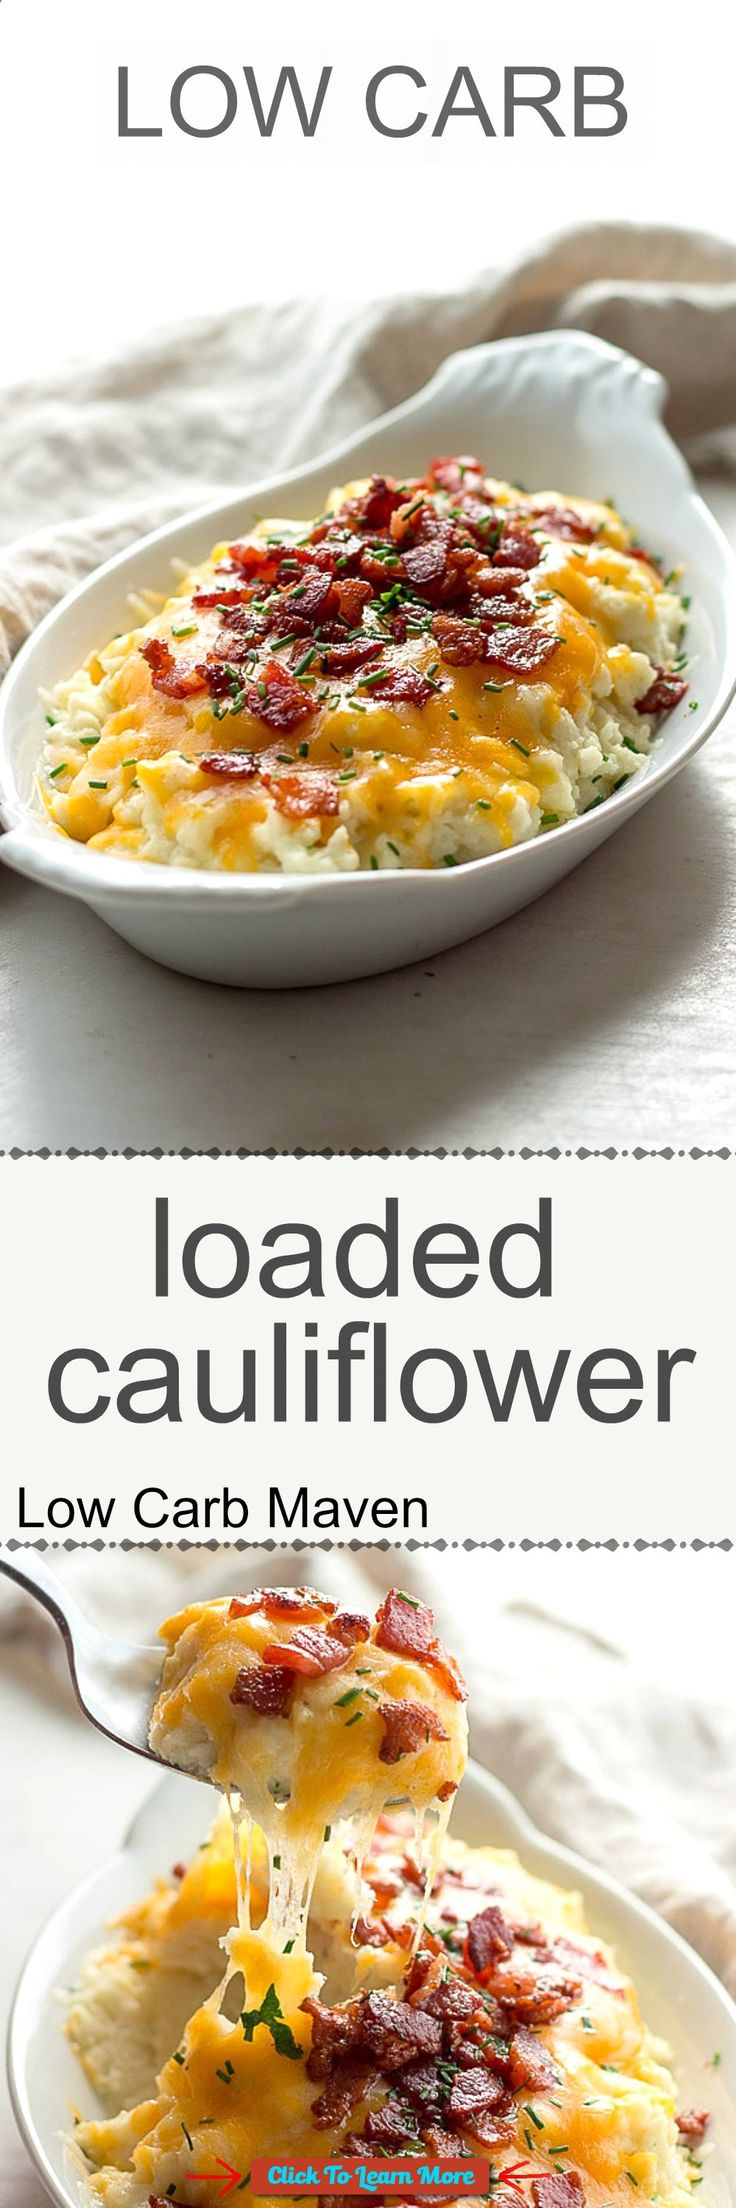 #FastestWayToLoseWeight by EATING, Click to learn more, Low carb loaded cauliflower with sour cream, chives, cheddar cheese and bacon. Keto. , #HealthyRecipes, #FitnessRecipes, #BurnFatRecipes, #WeightLossRecipes, #WeightLossDiets